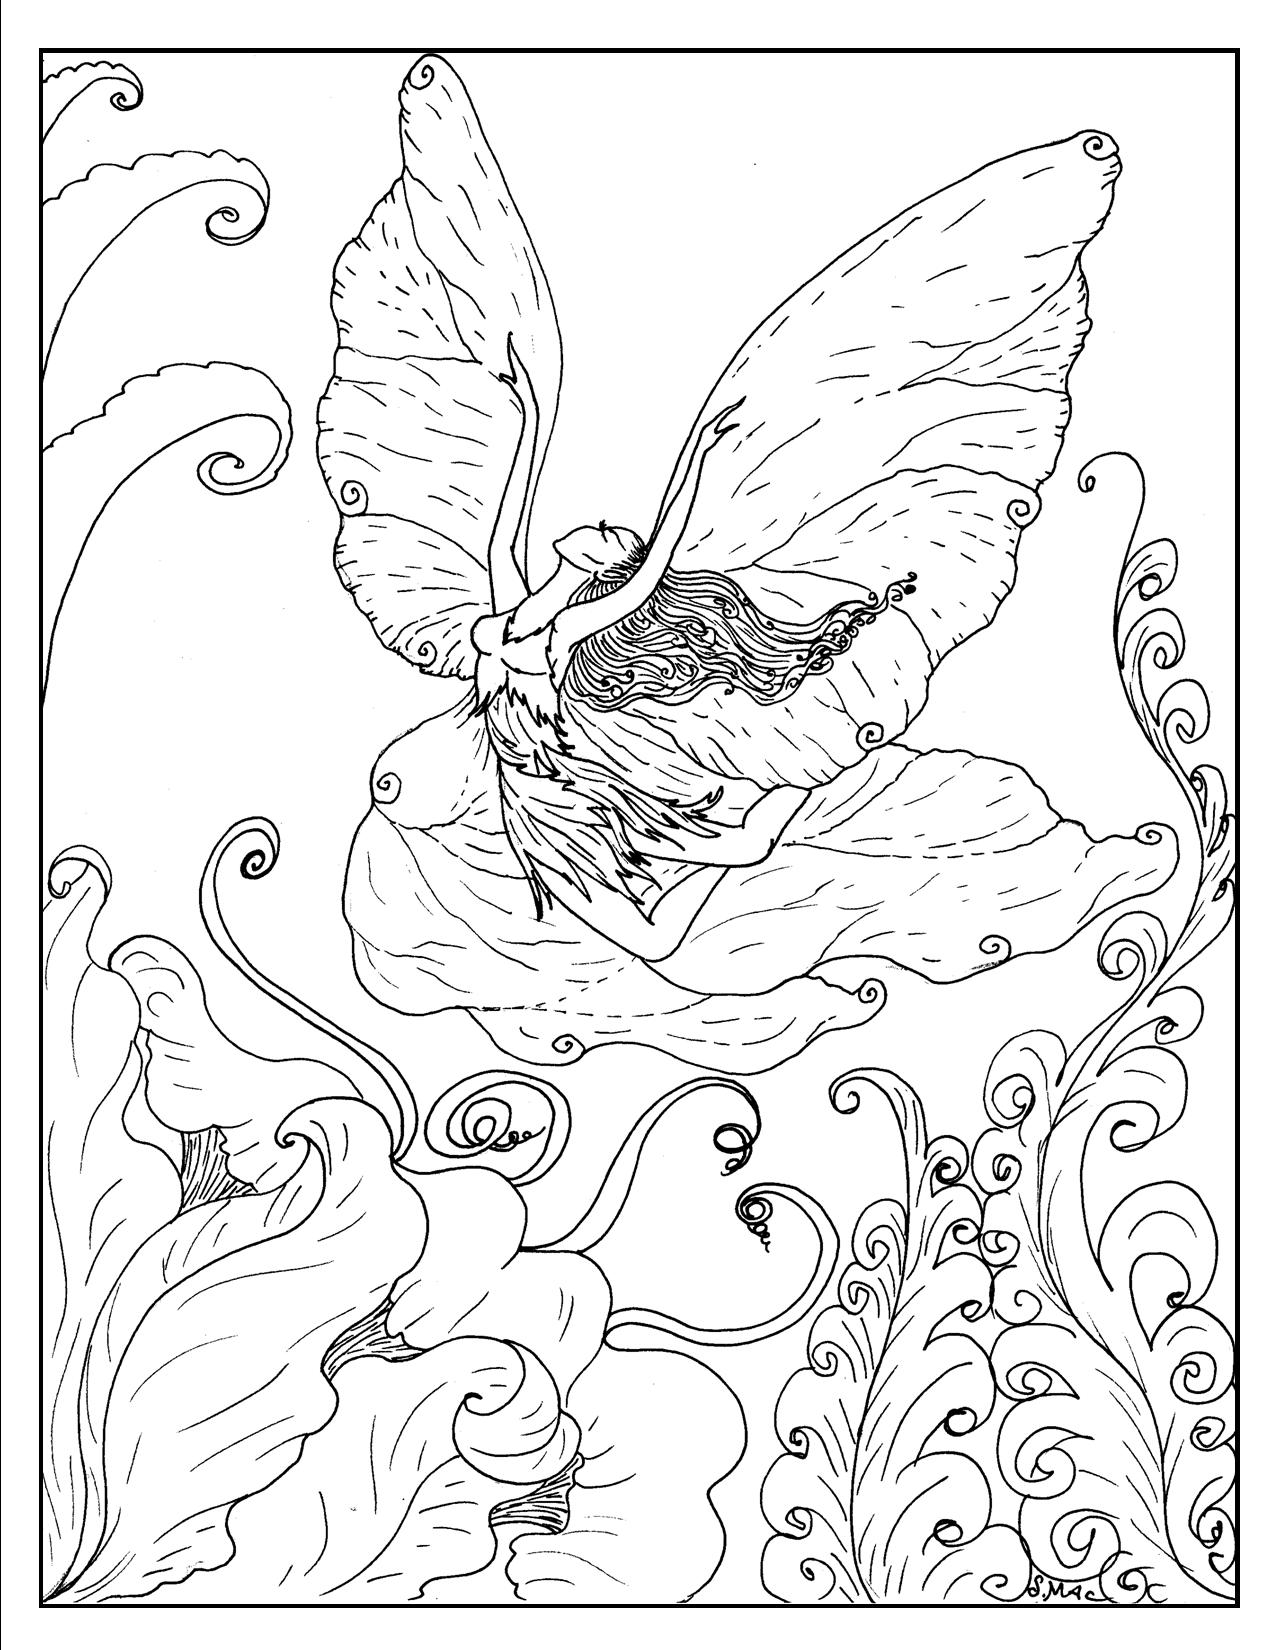 - Fantasy Coloring Pages - Best Coloring Pages For Kids